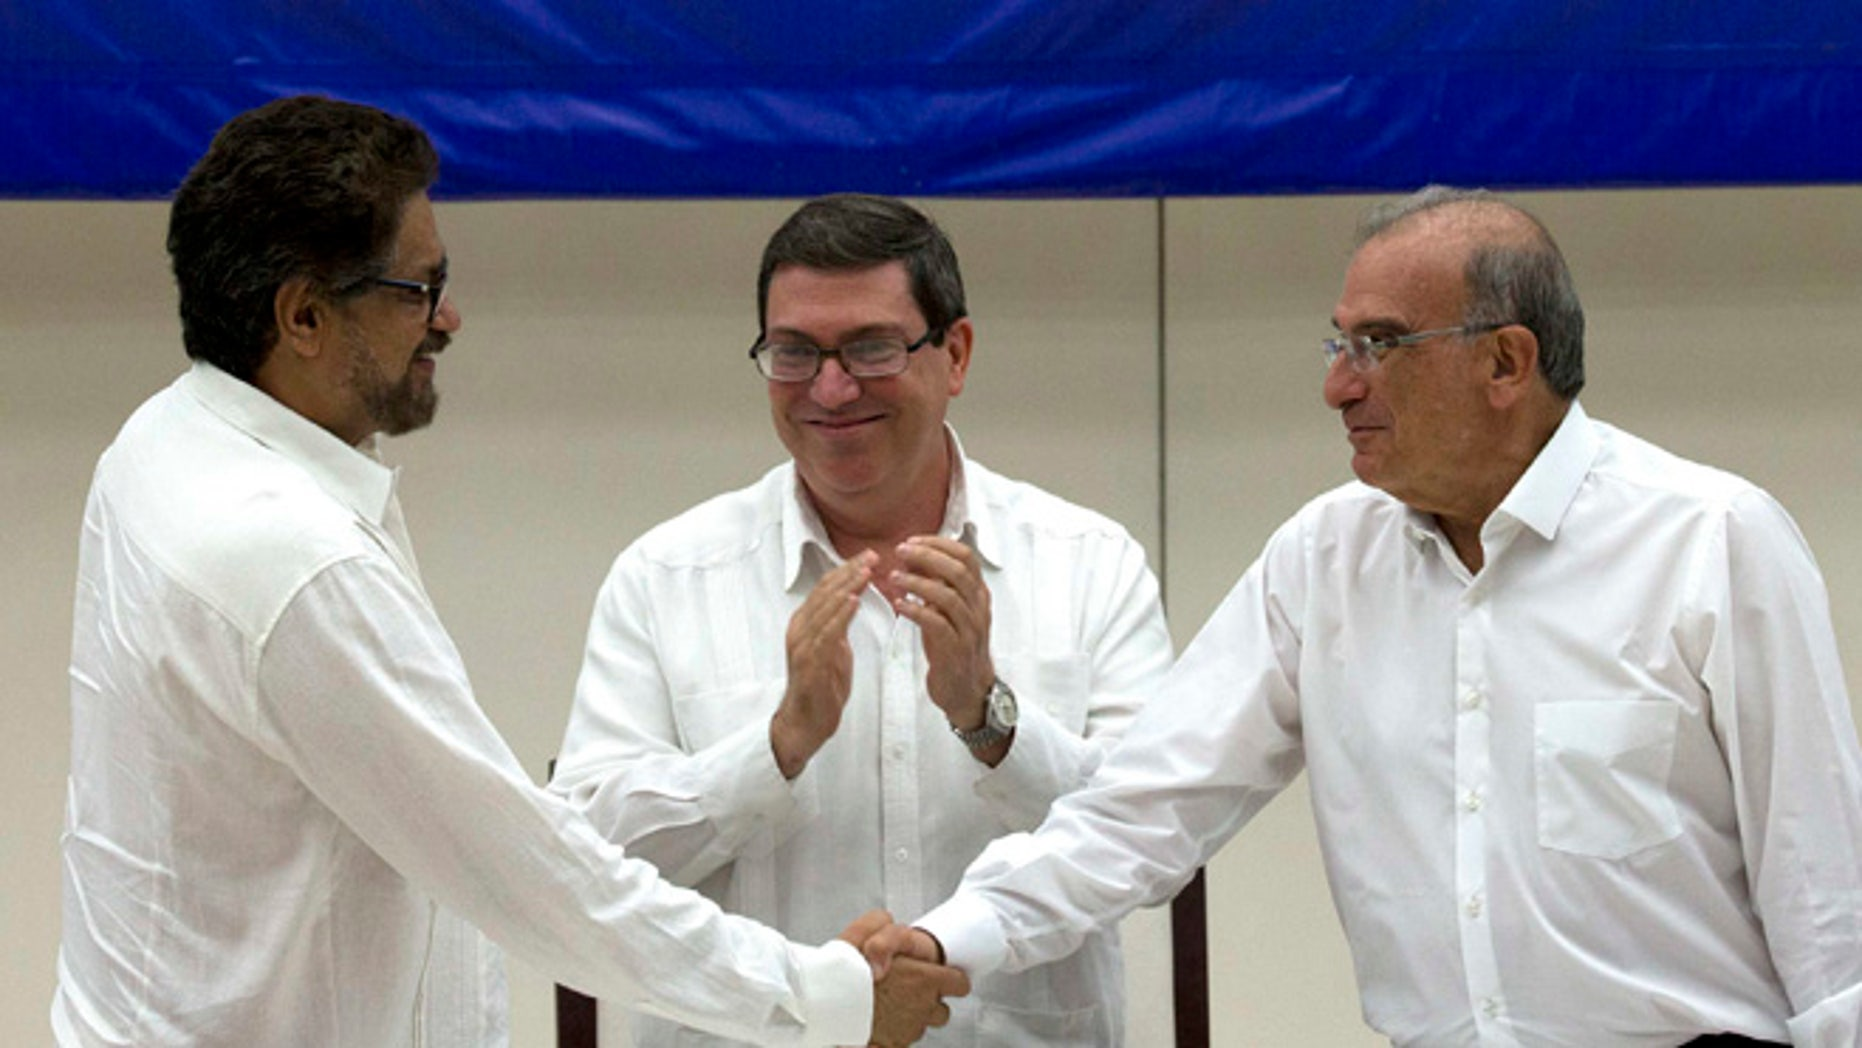 Humberto de La Calle, Ivan Marquez and Cuban Foreign Minister Bruno Rodriguez after signing an agreement in Havana, Cuba.